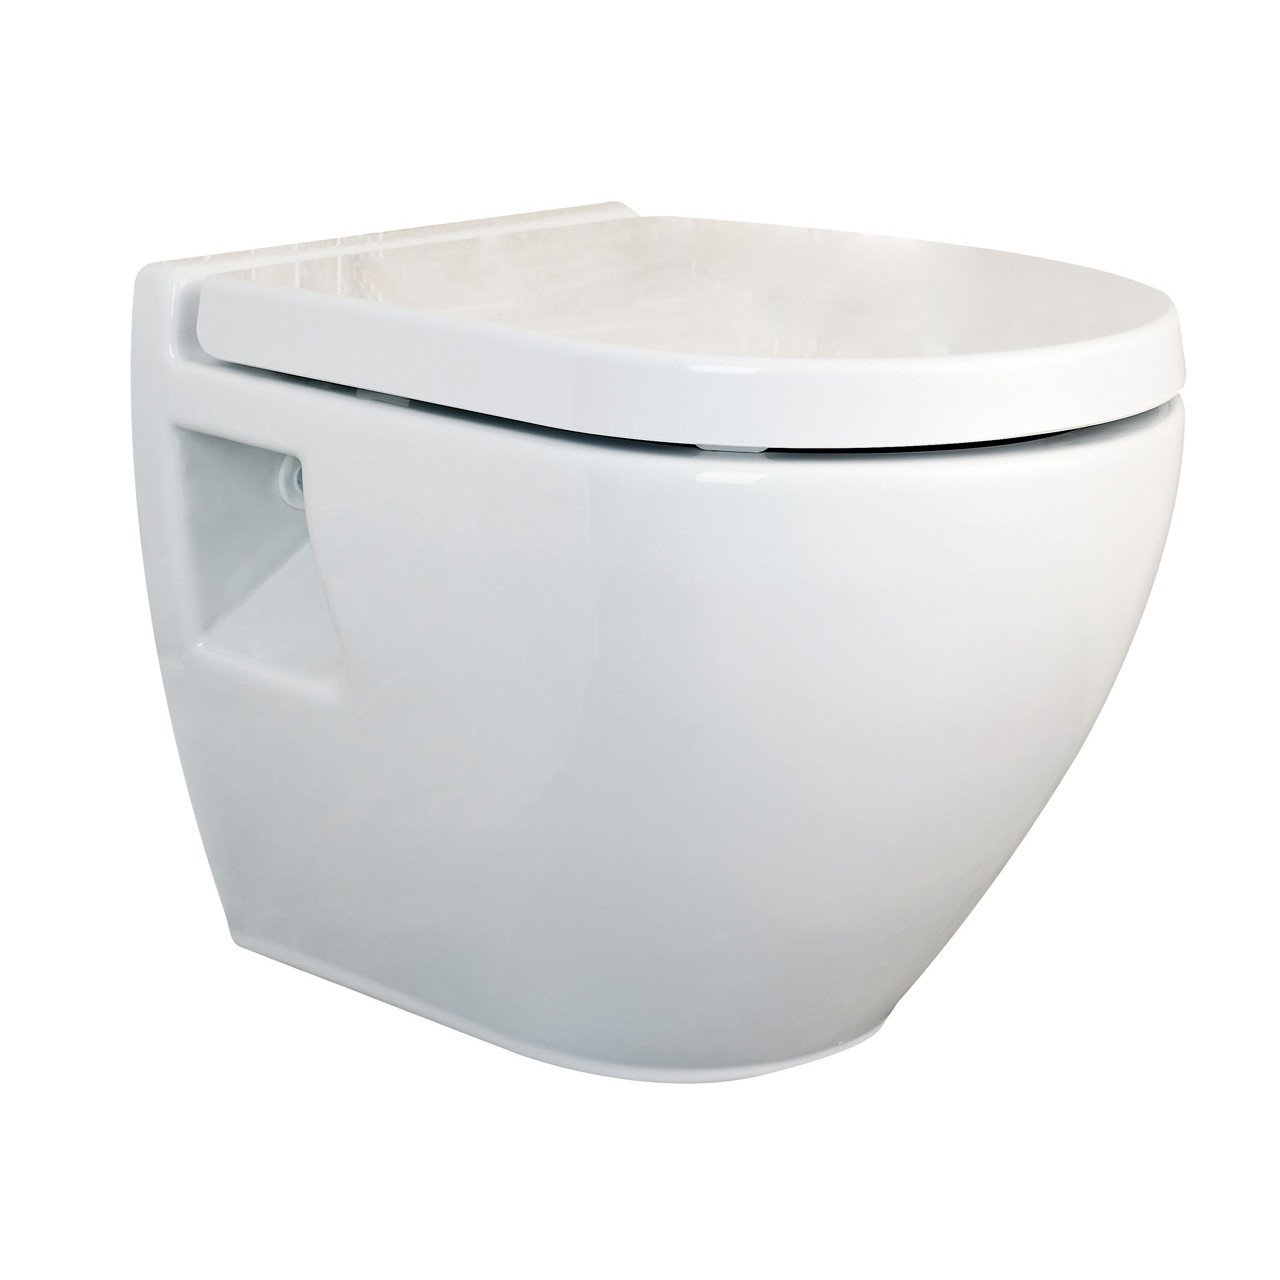 Nuie Provost Round Wall Hung Pan - NCU900C